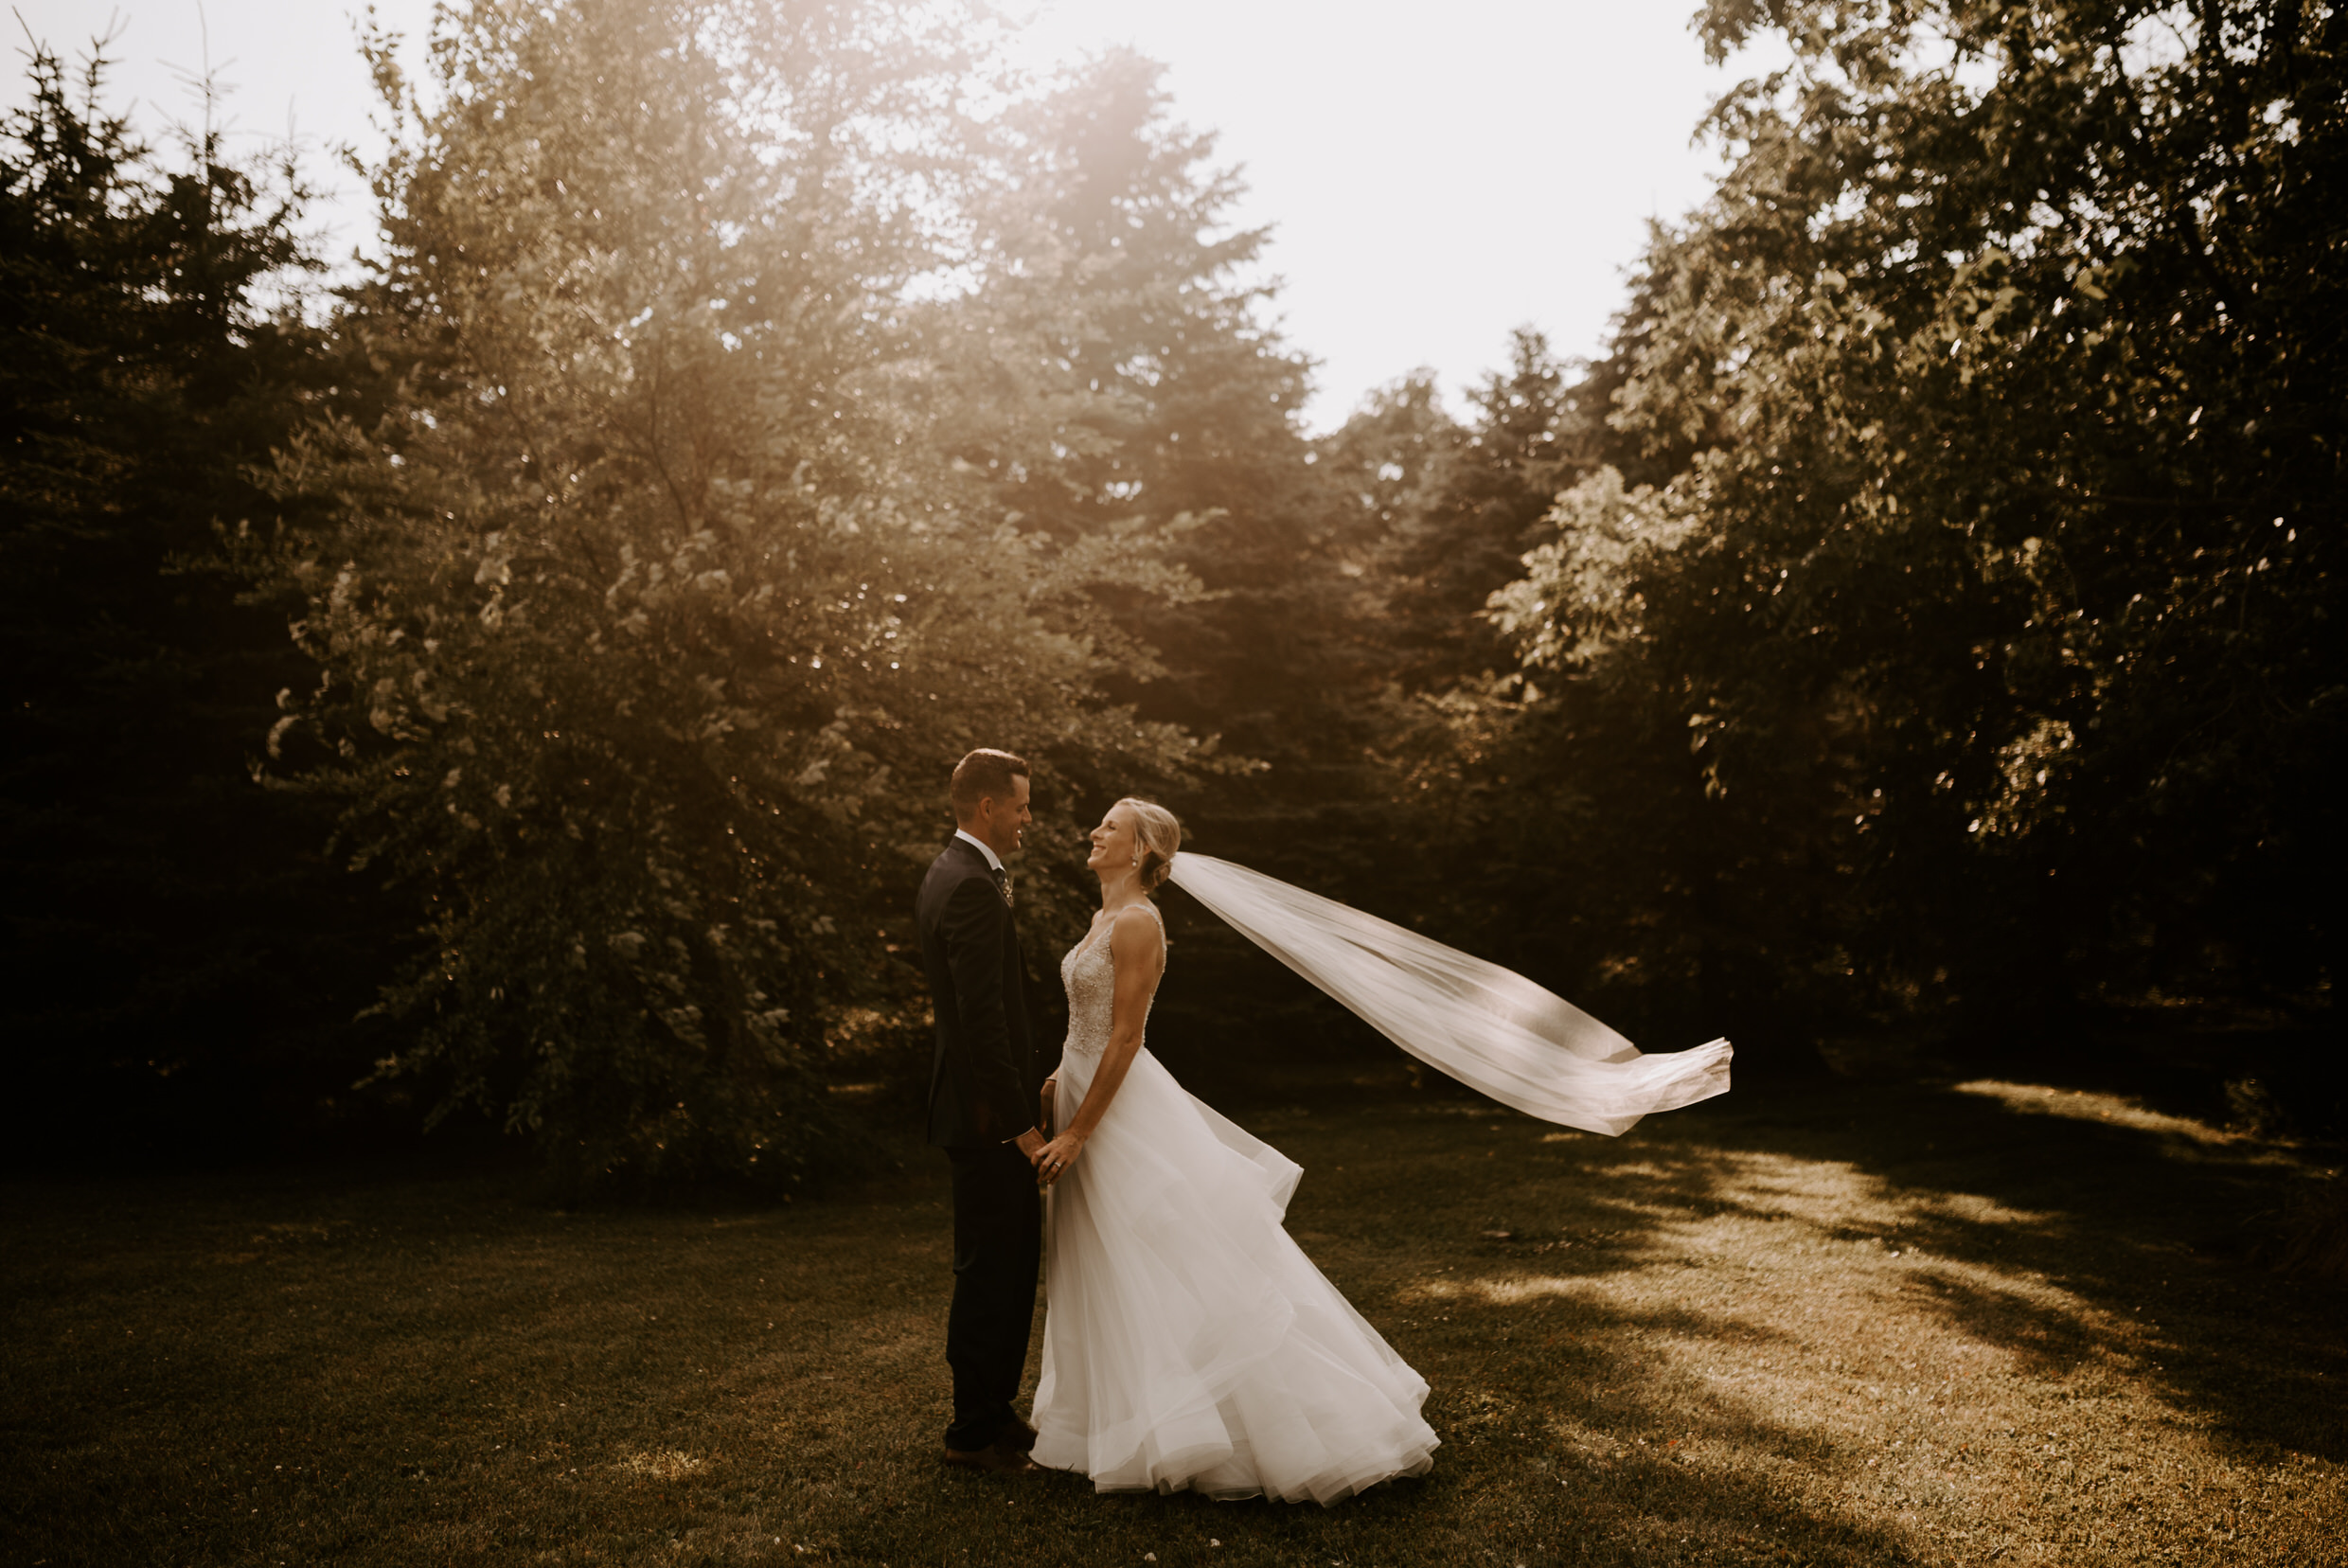 Belcroft Estates Wedding - Bride and groom in forest with blowing veil